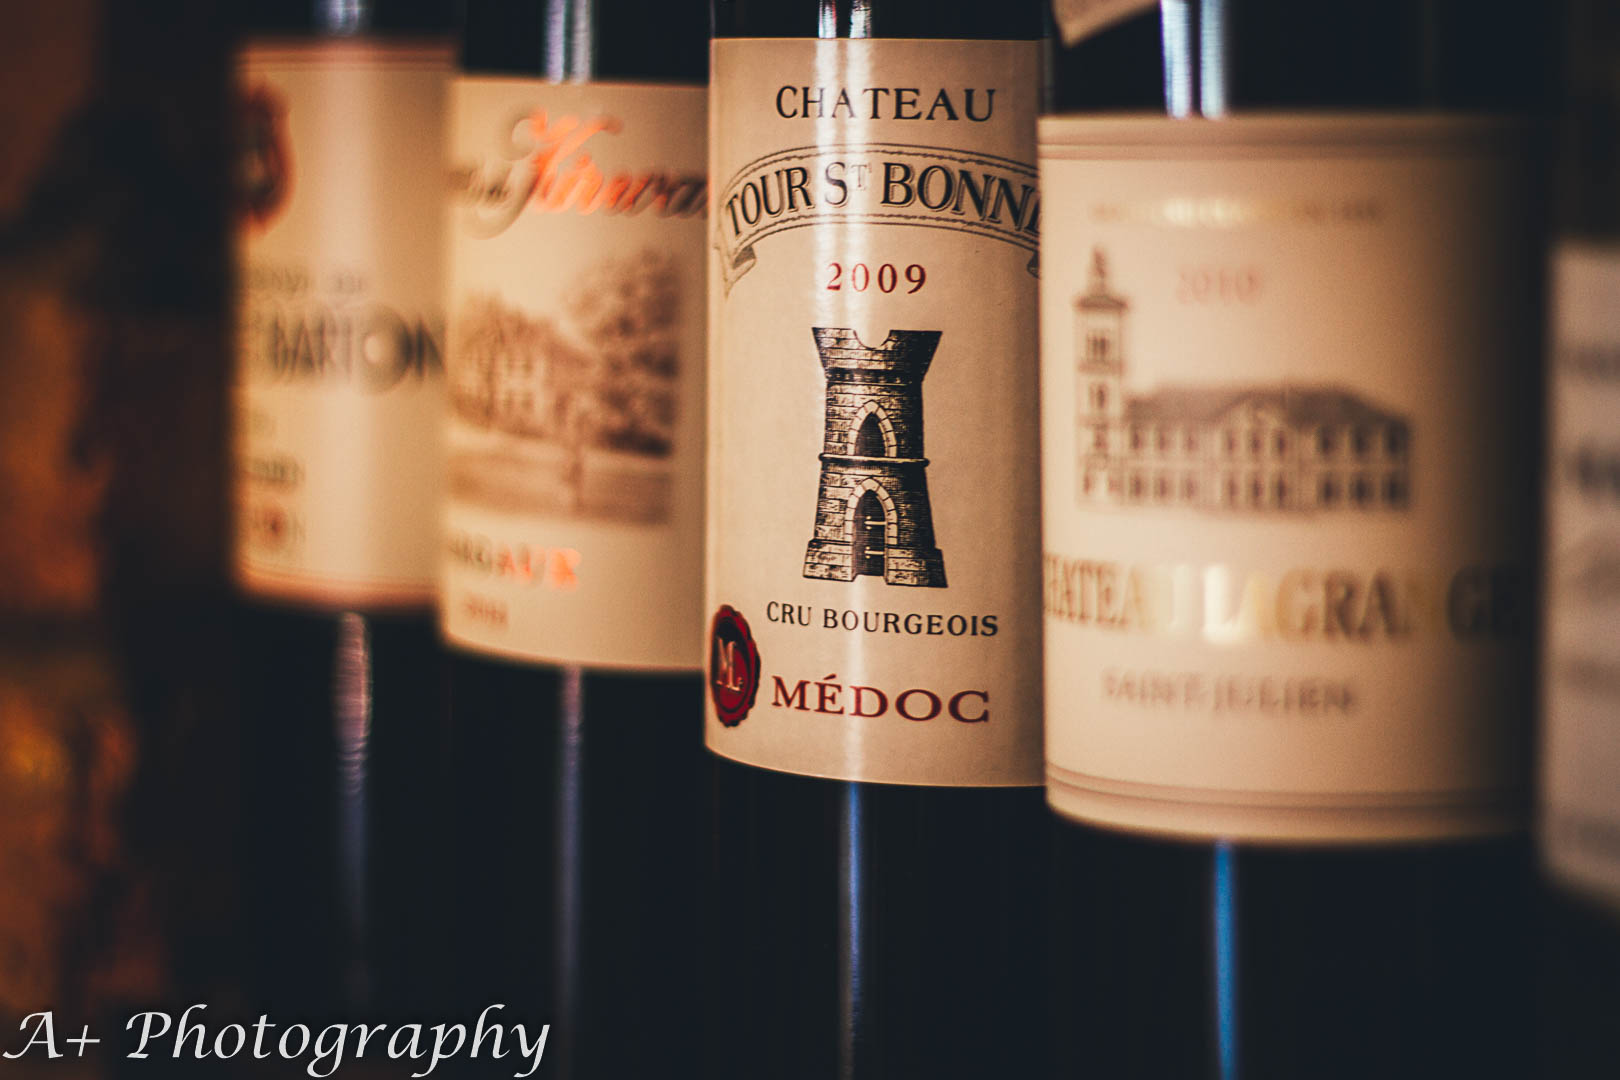 Moody product photography: Several red wine bottles together on a shelf